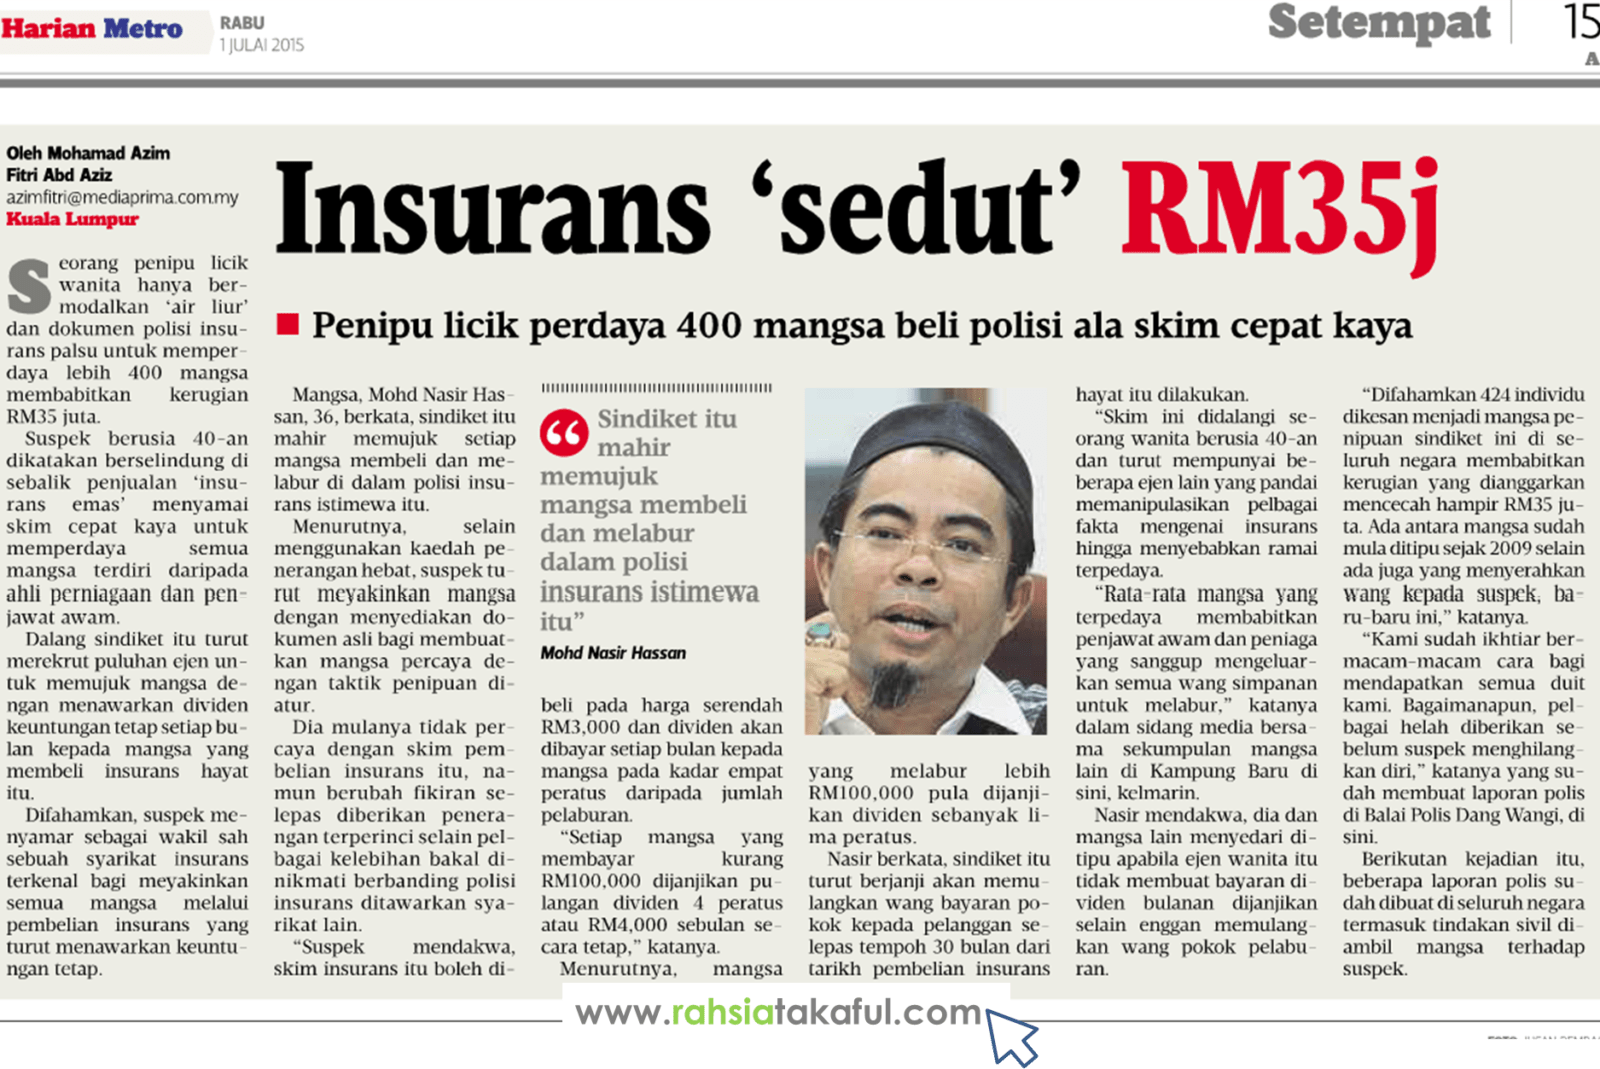 income protection plan takaful Additional benefits to supplement your takaful plan for optimum coverage protection features, this rider pays an annual sum covered (income) upon the covered person's diagnosis of a critical illness or total permanent disability within the age of 70 and below payment of annual benefit is on each anniversary of claim.